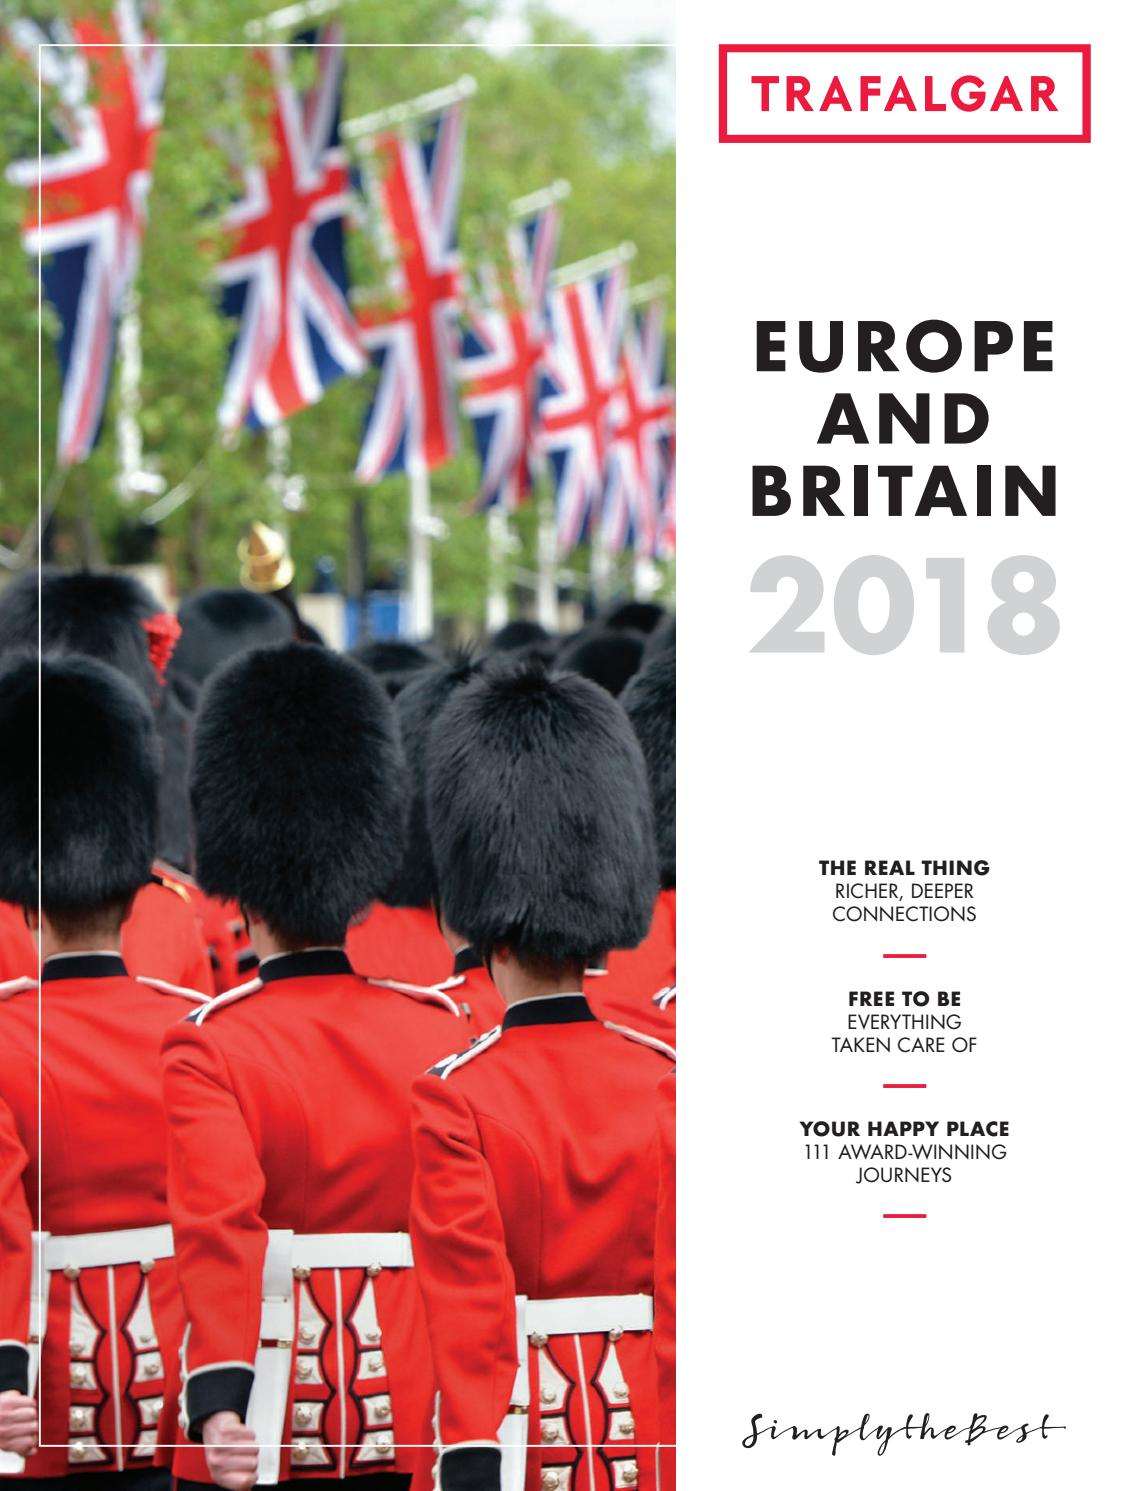 Caminetto D'oro Ausonia Europe And Britain 2018 Fe By Trafalgar Issuu